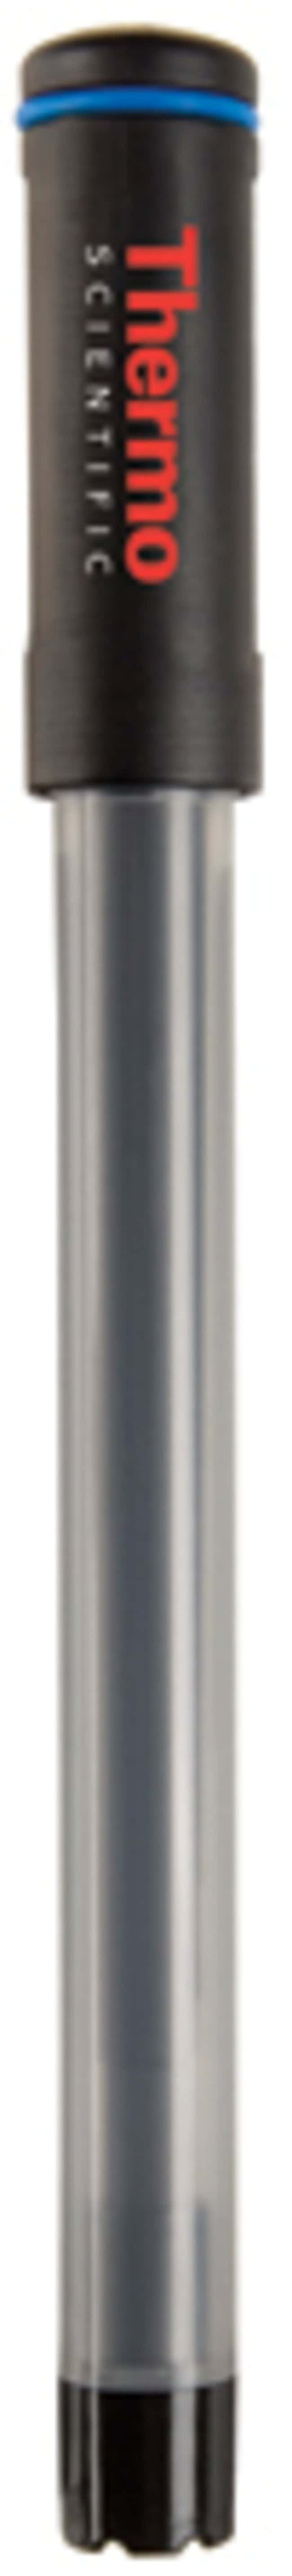 Thermo Scientific™Orion™ High-Performance Ammonia Electrode